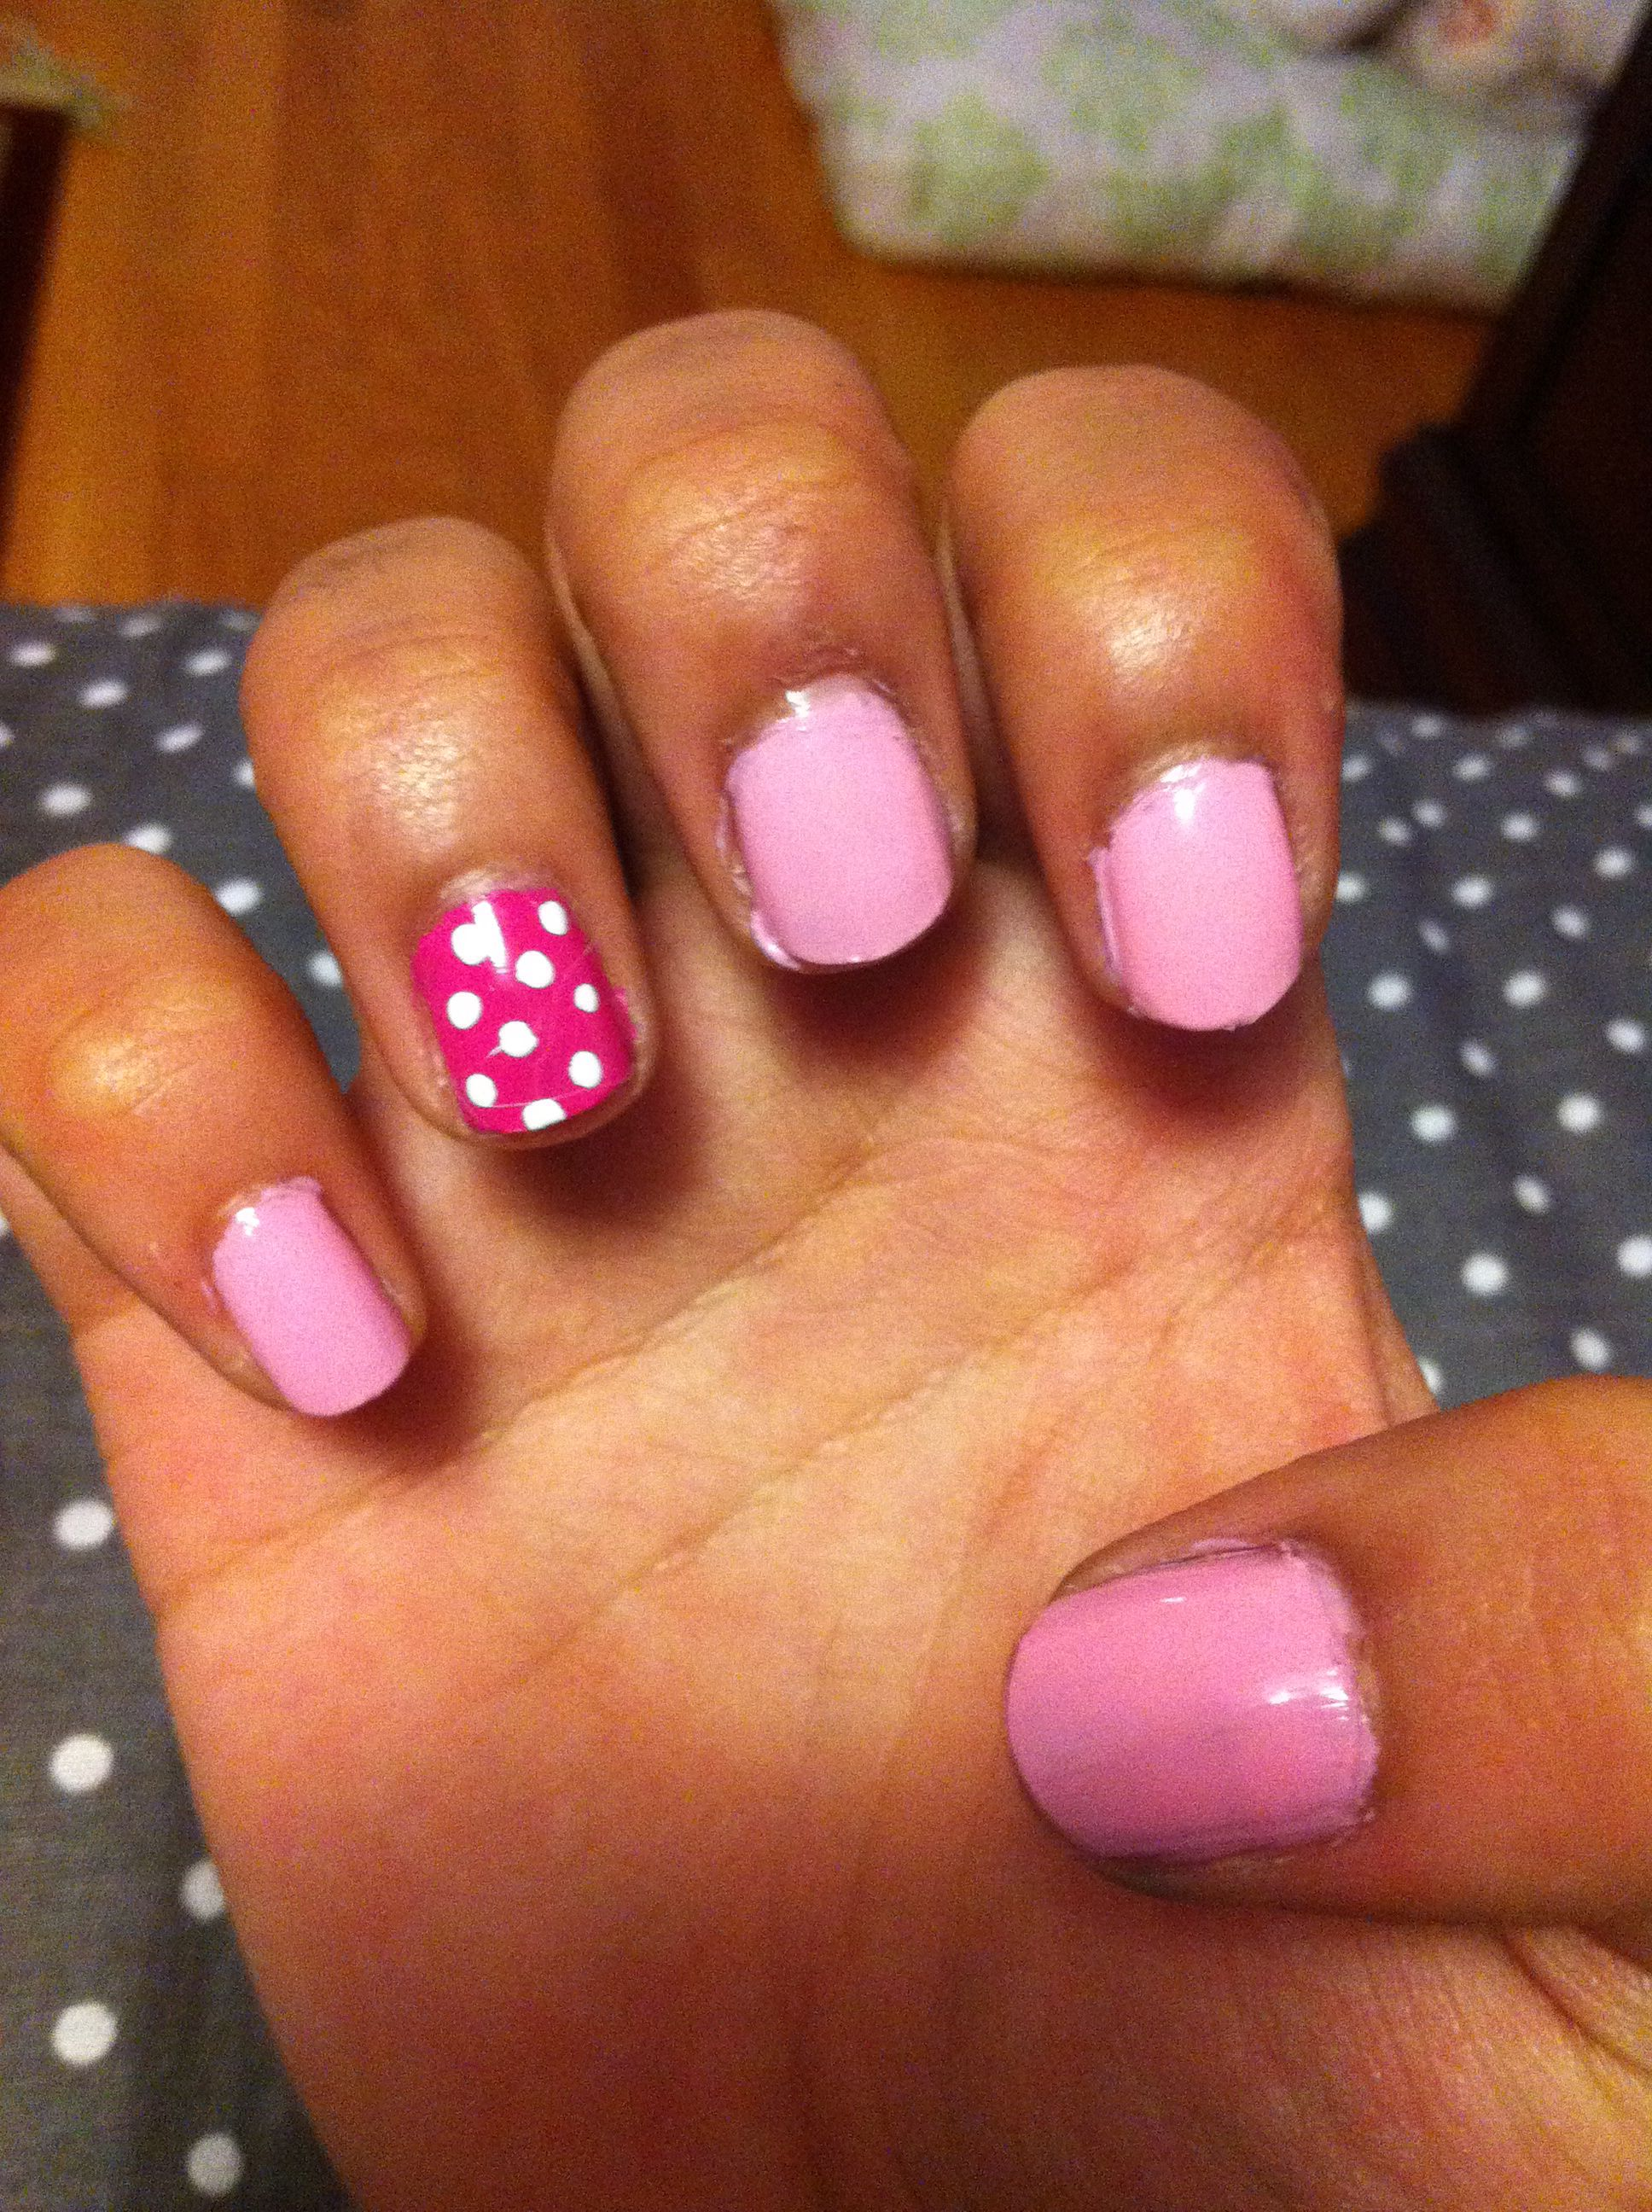 Polka dotted pink